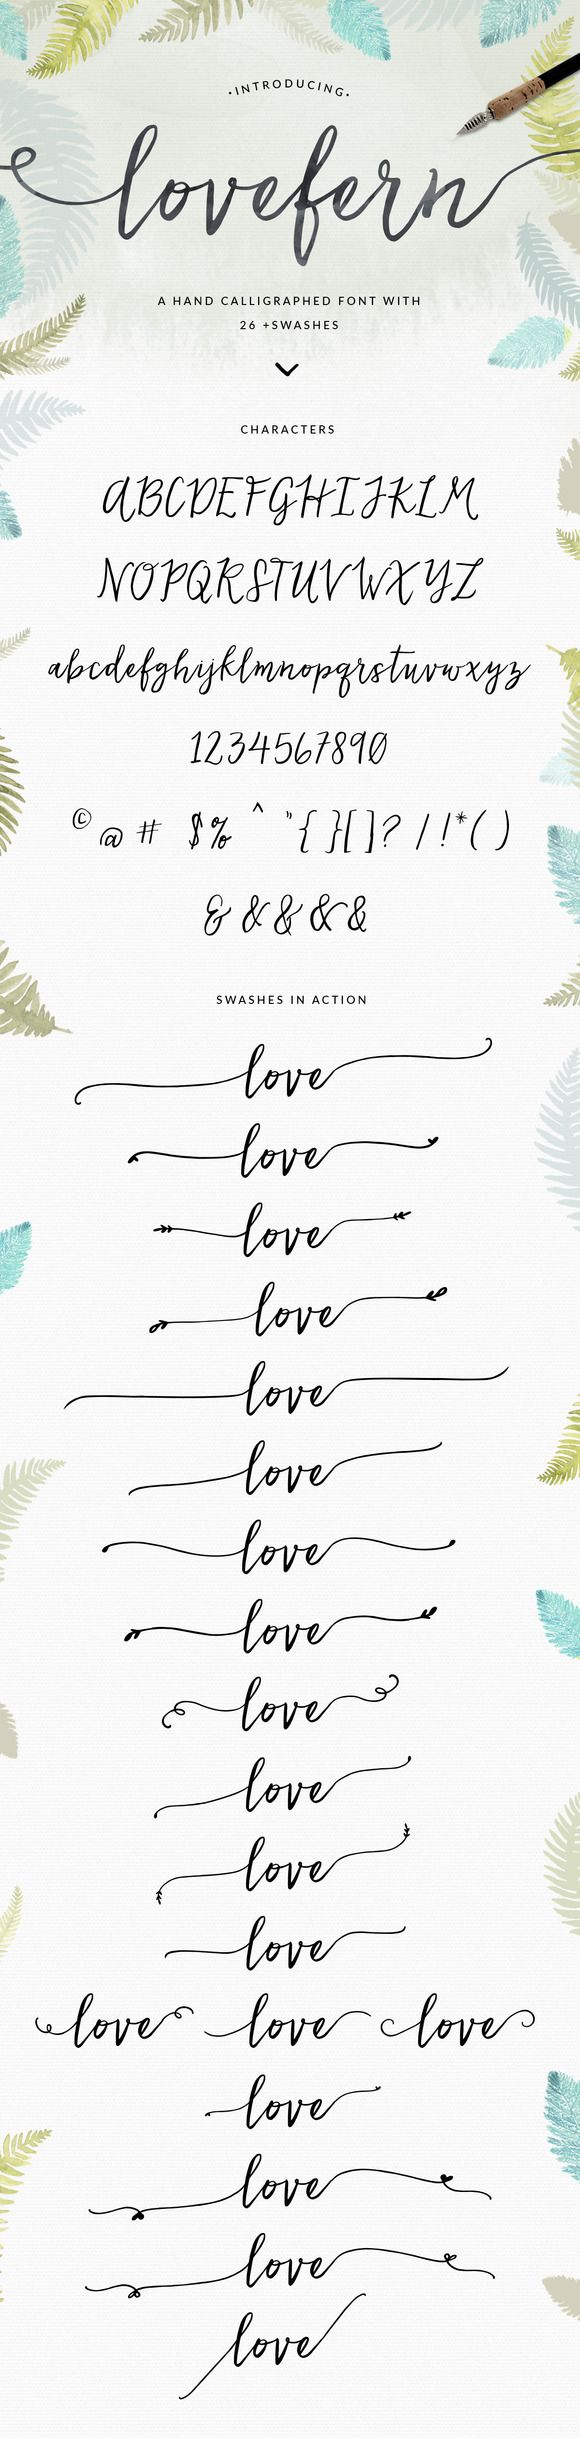 Lovefern Font + SWASHES by Angie Makes on Creative Market